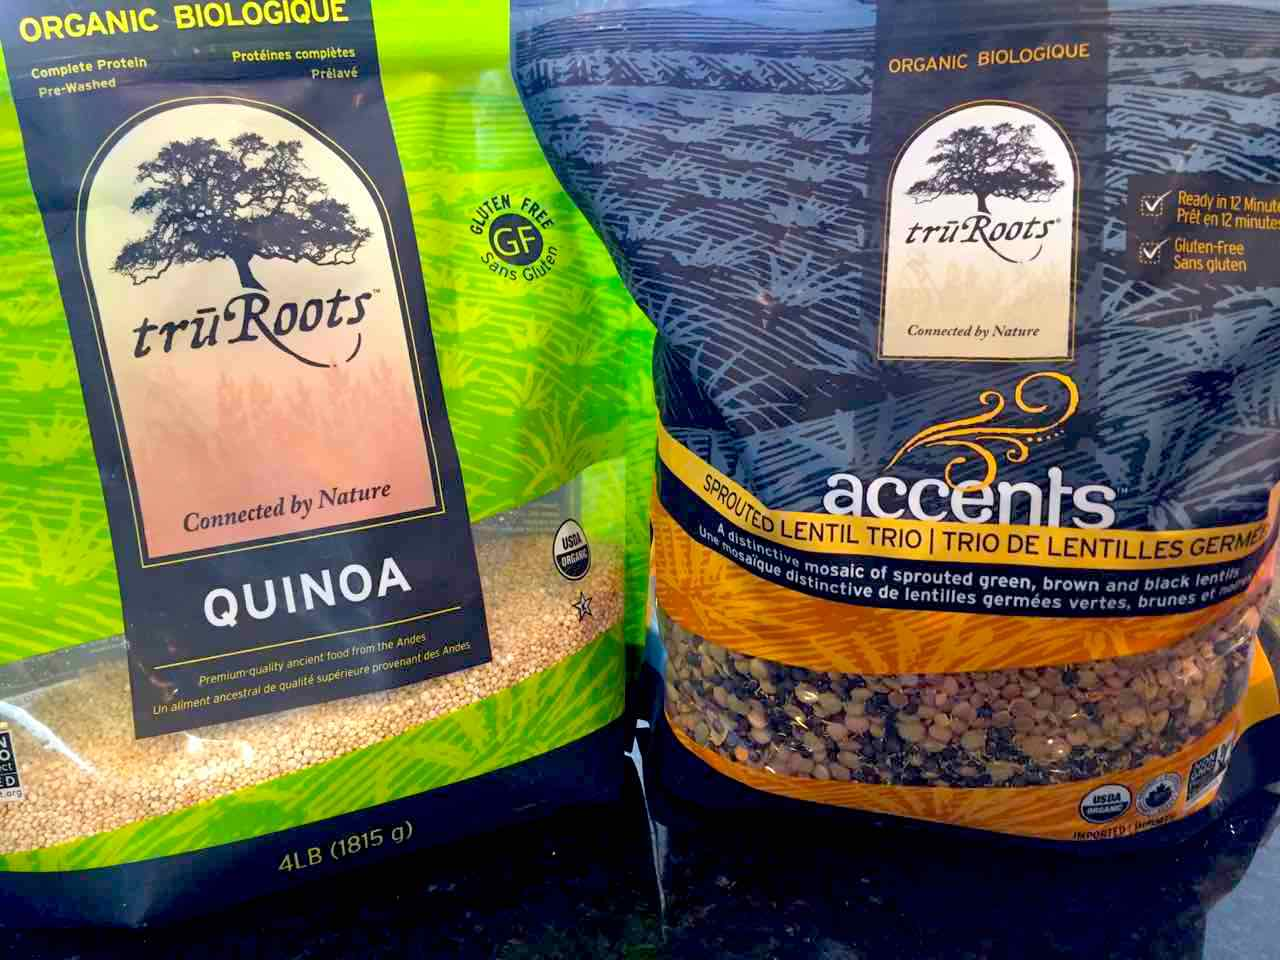 Image of Quinoa and Sprouted Lentils in Packages truRoots